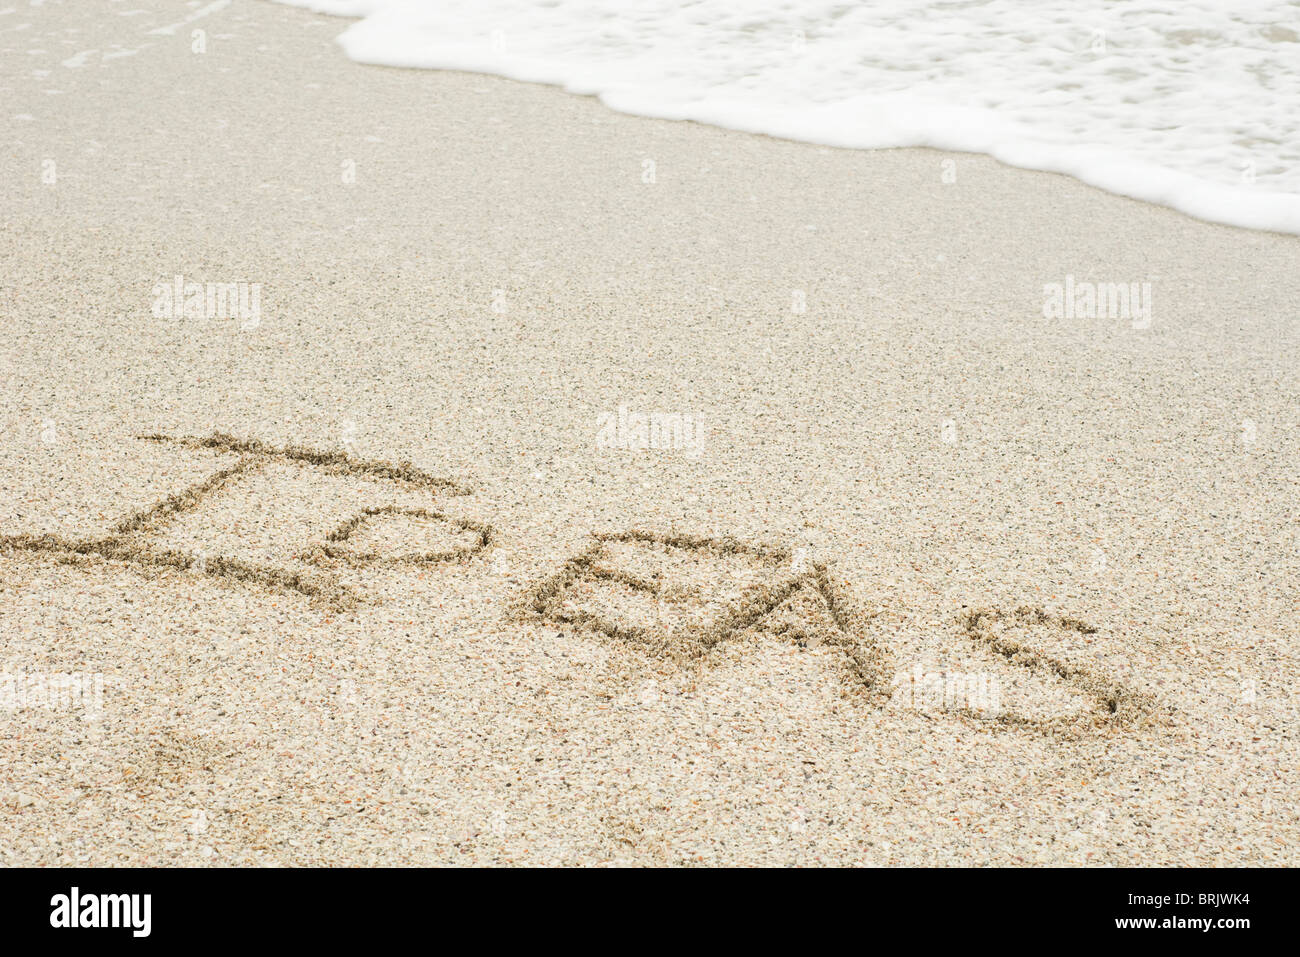 The word 'ideas' written in the sand at the beach - Stock Image